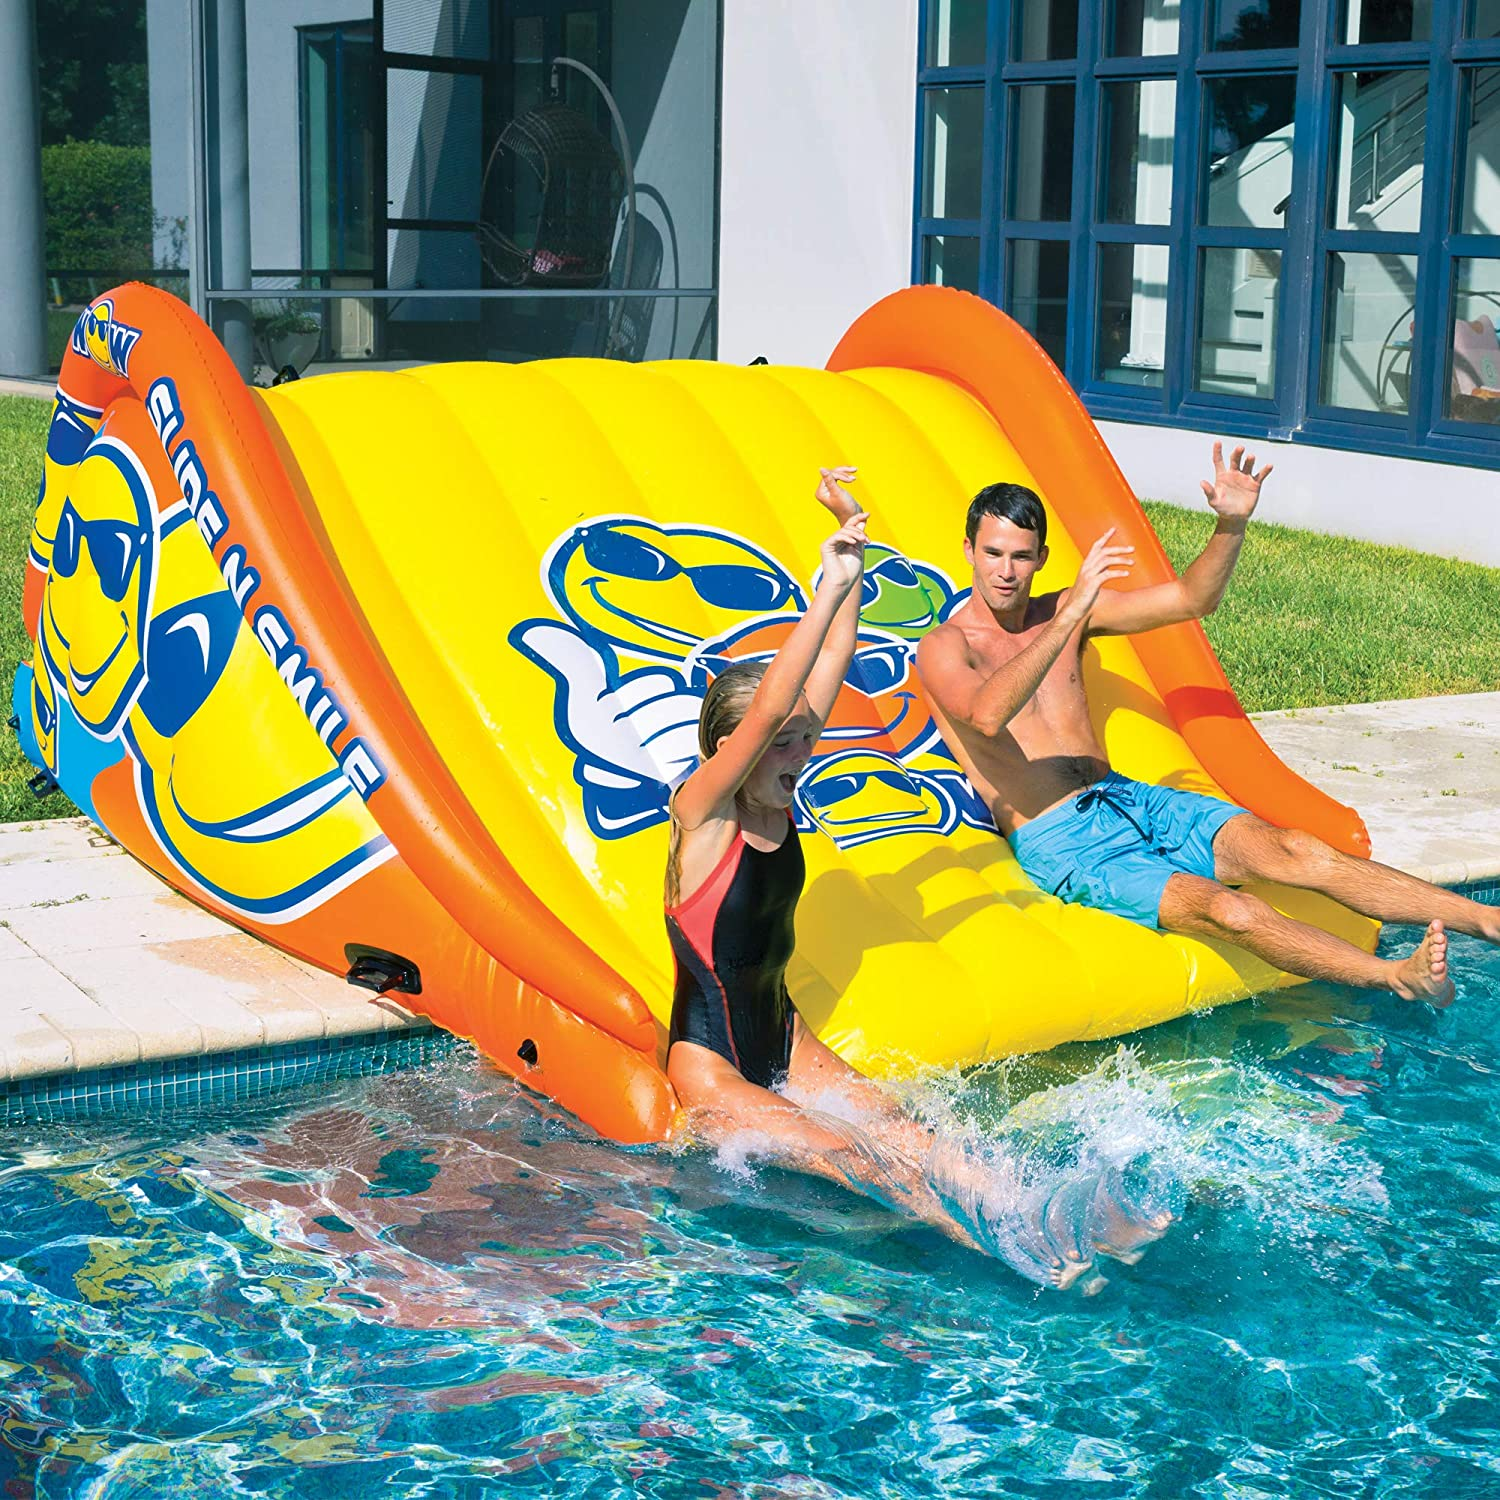 WOW Watersports Slide N Smile